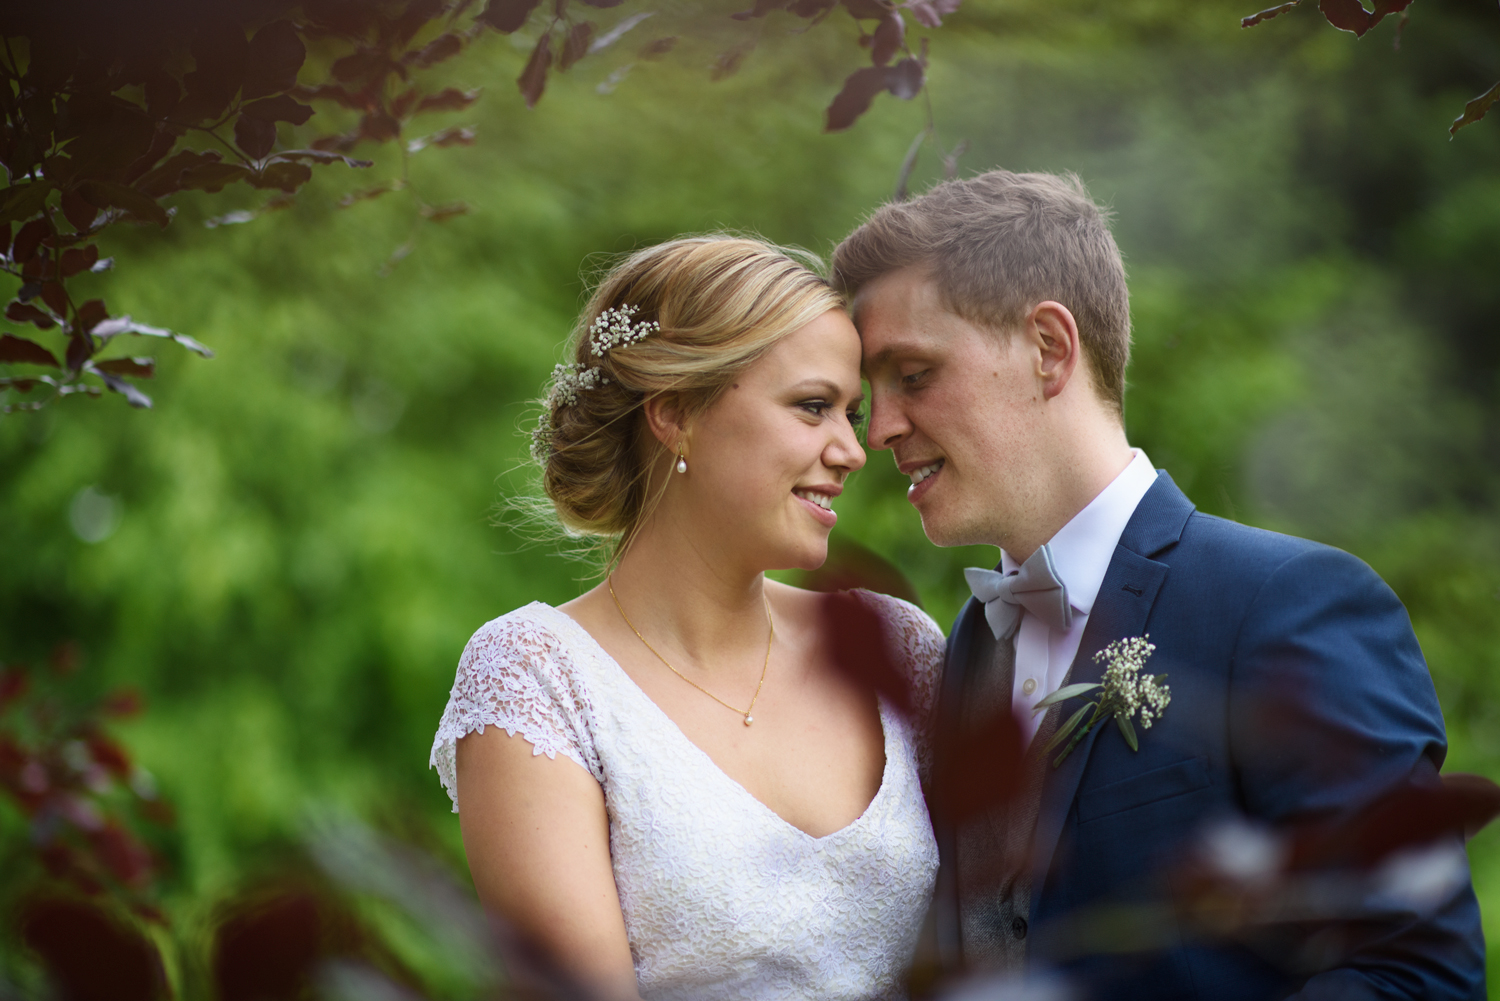 Ida_Hollis_Wedding_Photography103.jpg